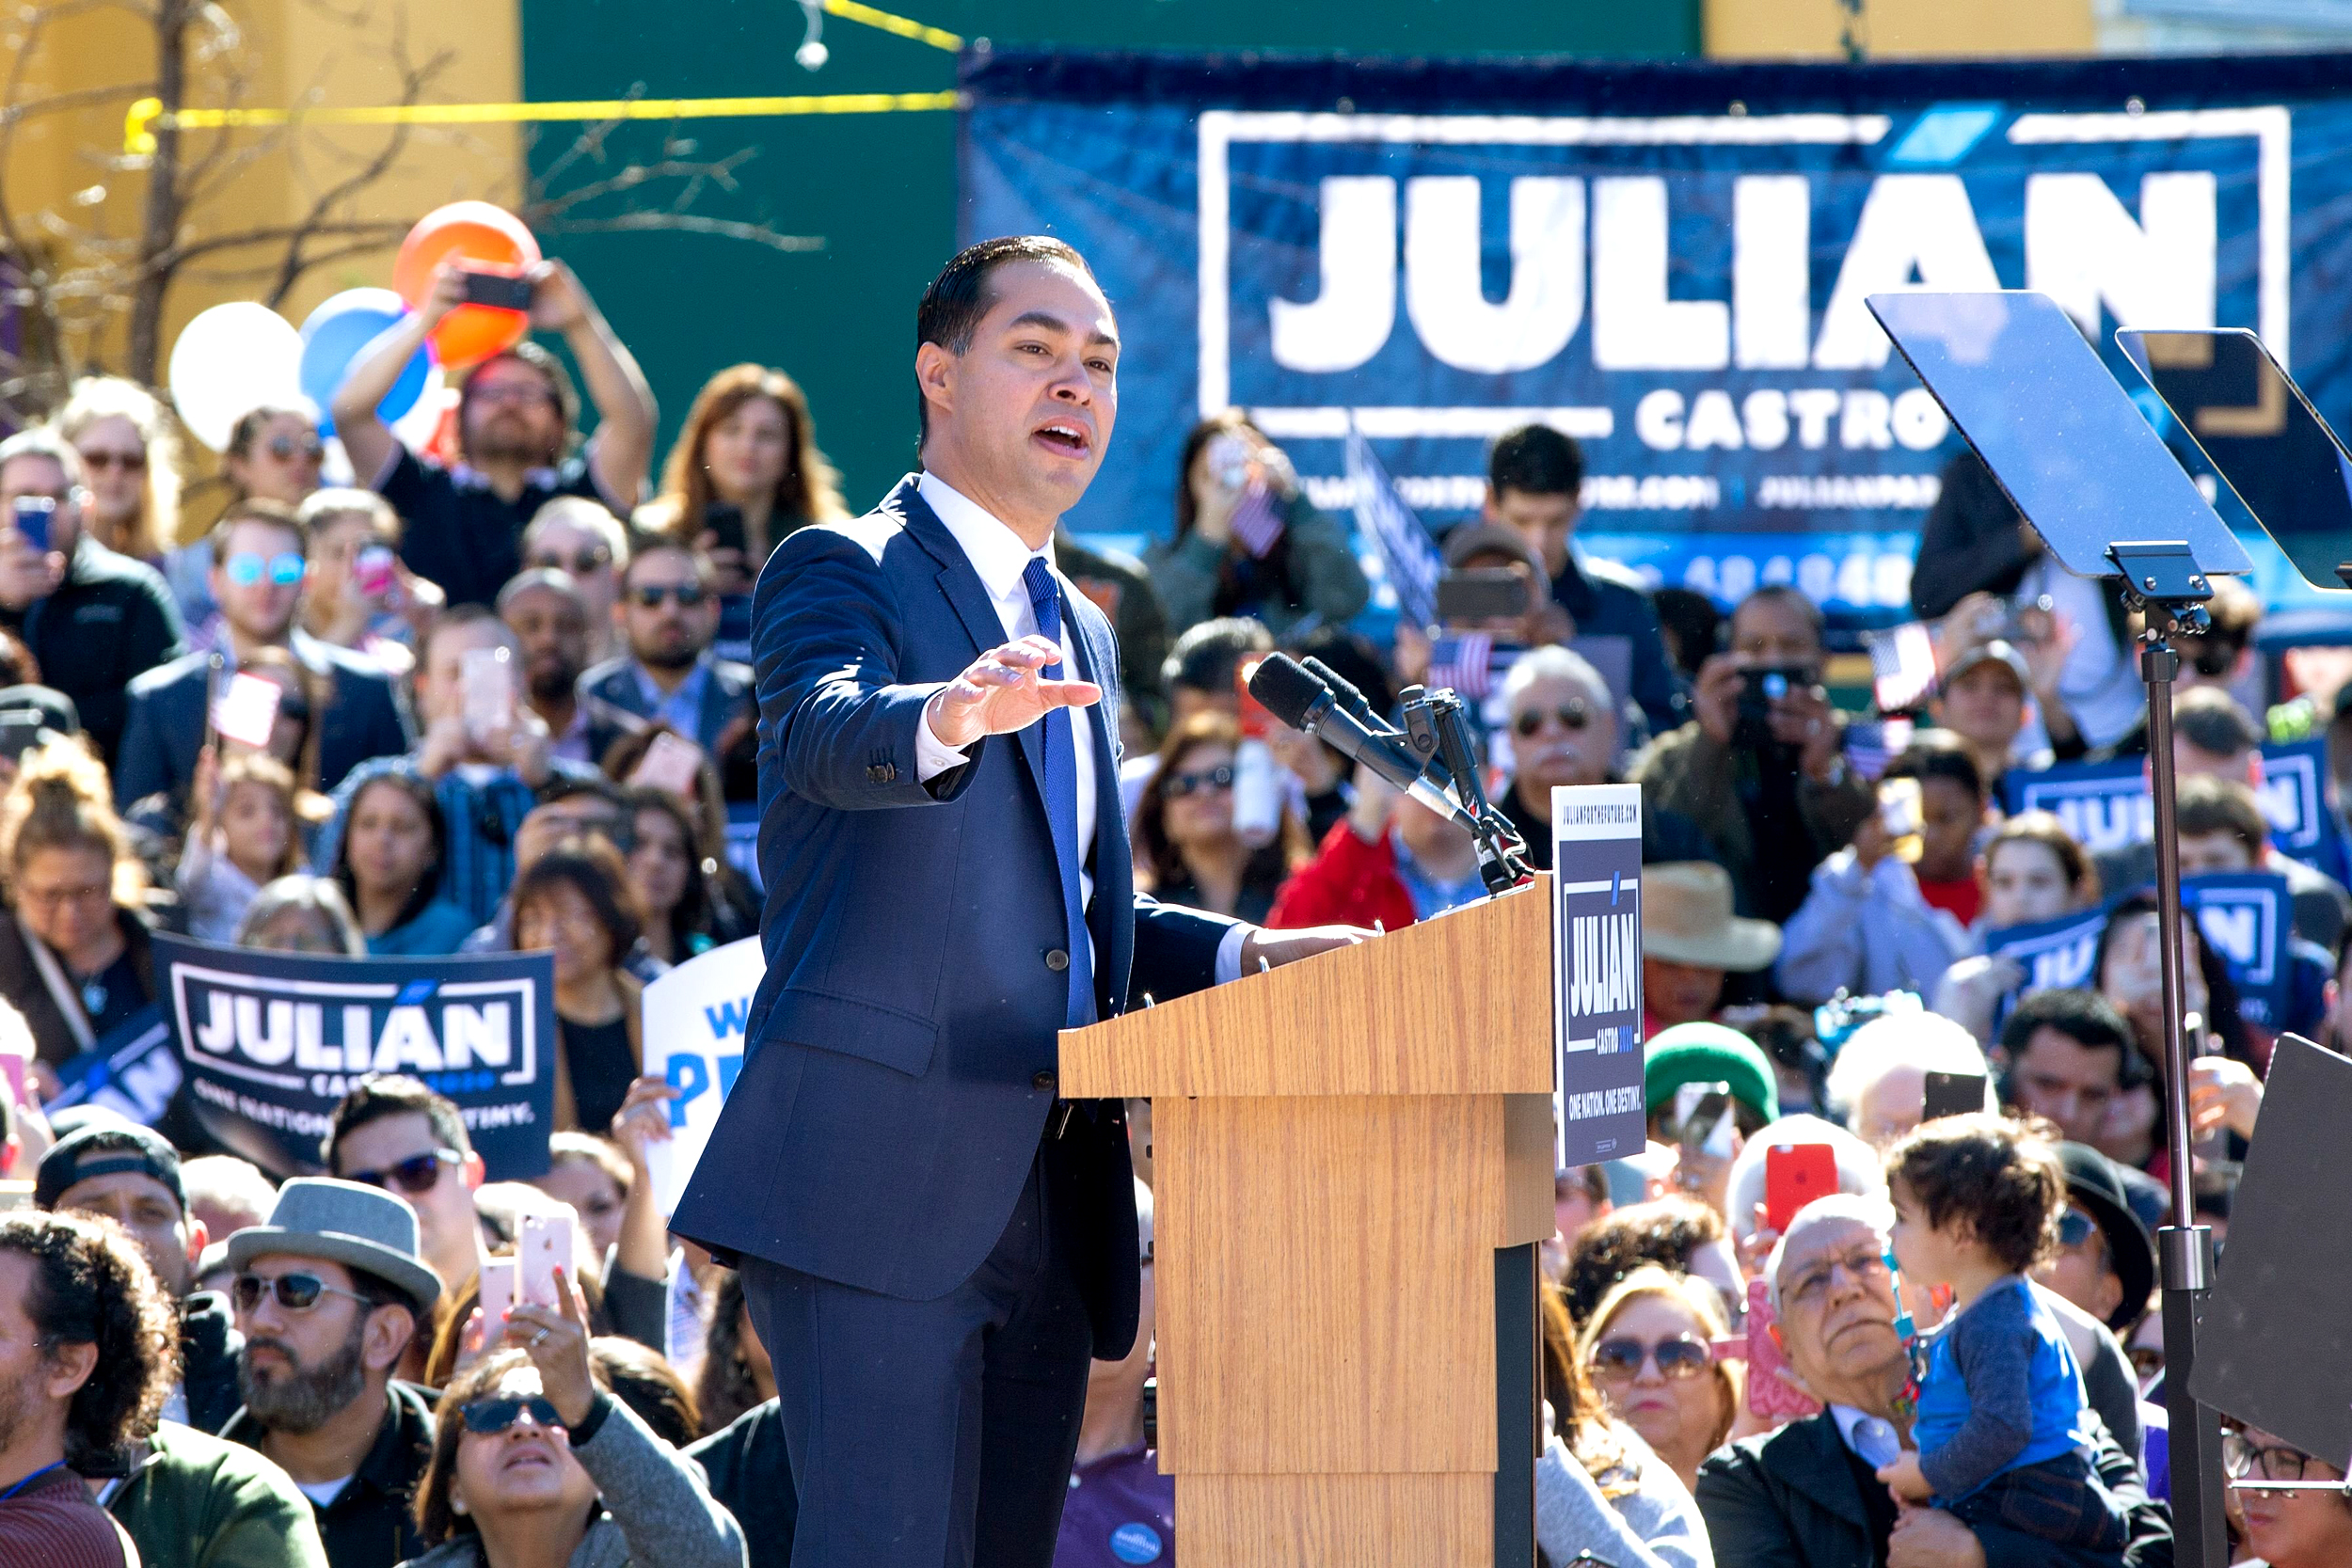 Democrat Julián Castro announces 2020 presidential bid